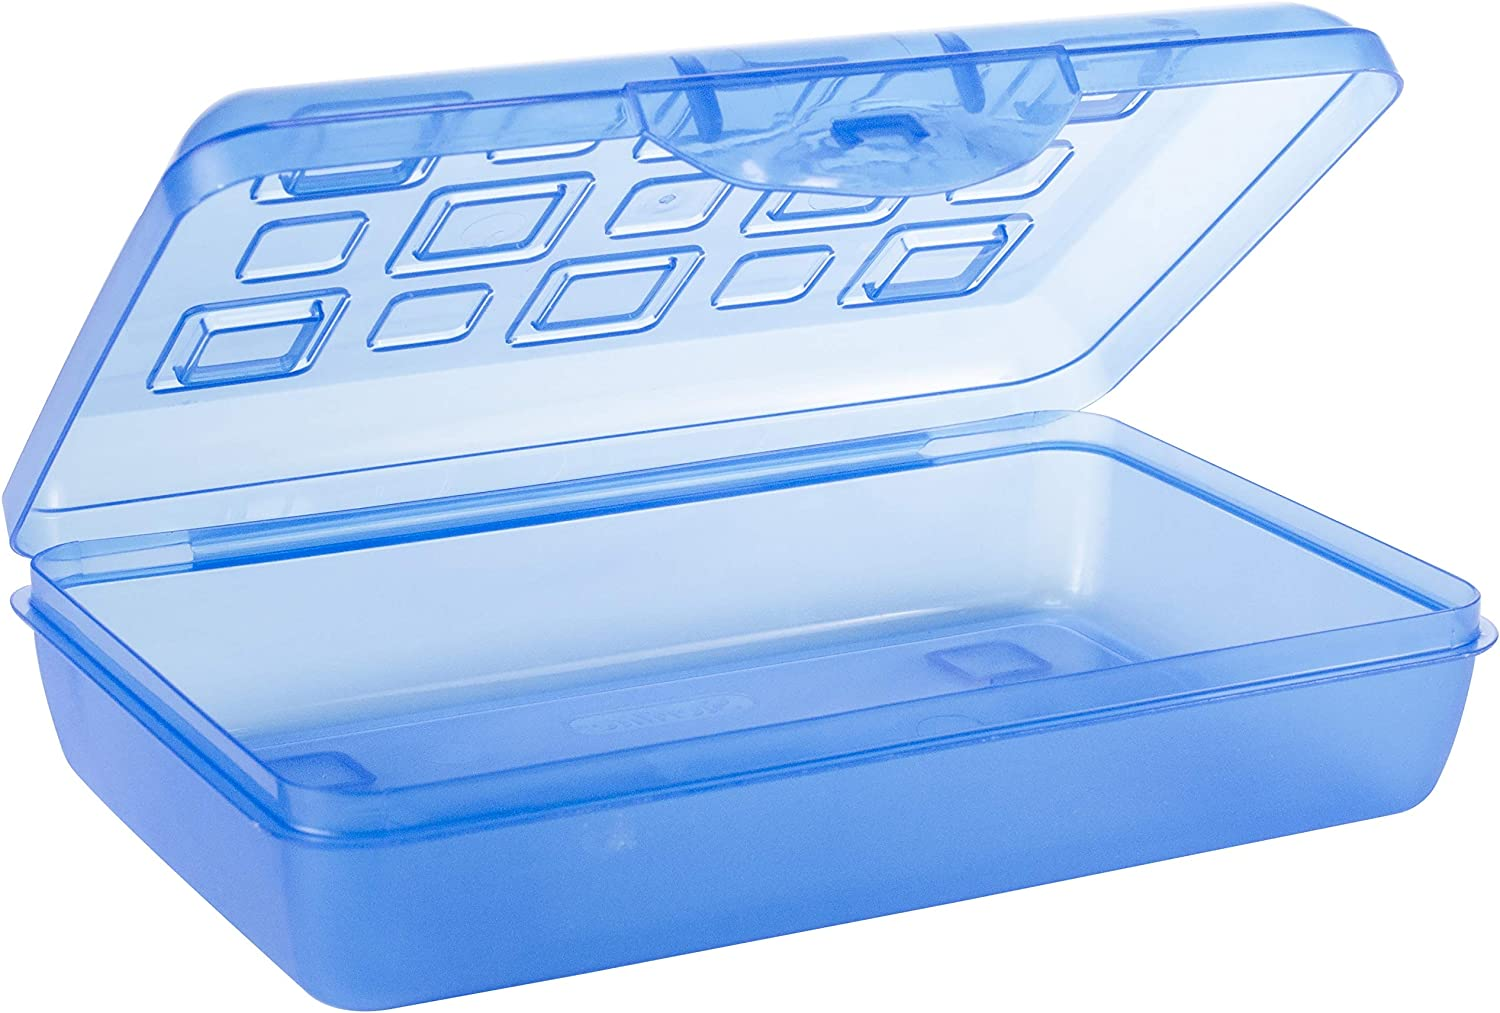 Amazon.com : Sterilite Pencil Box with Splash Tint Lid (17224812 ...